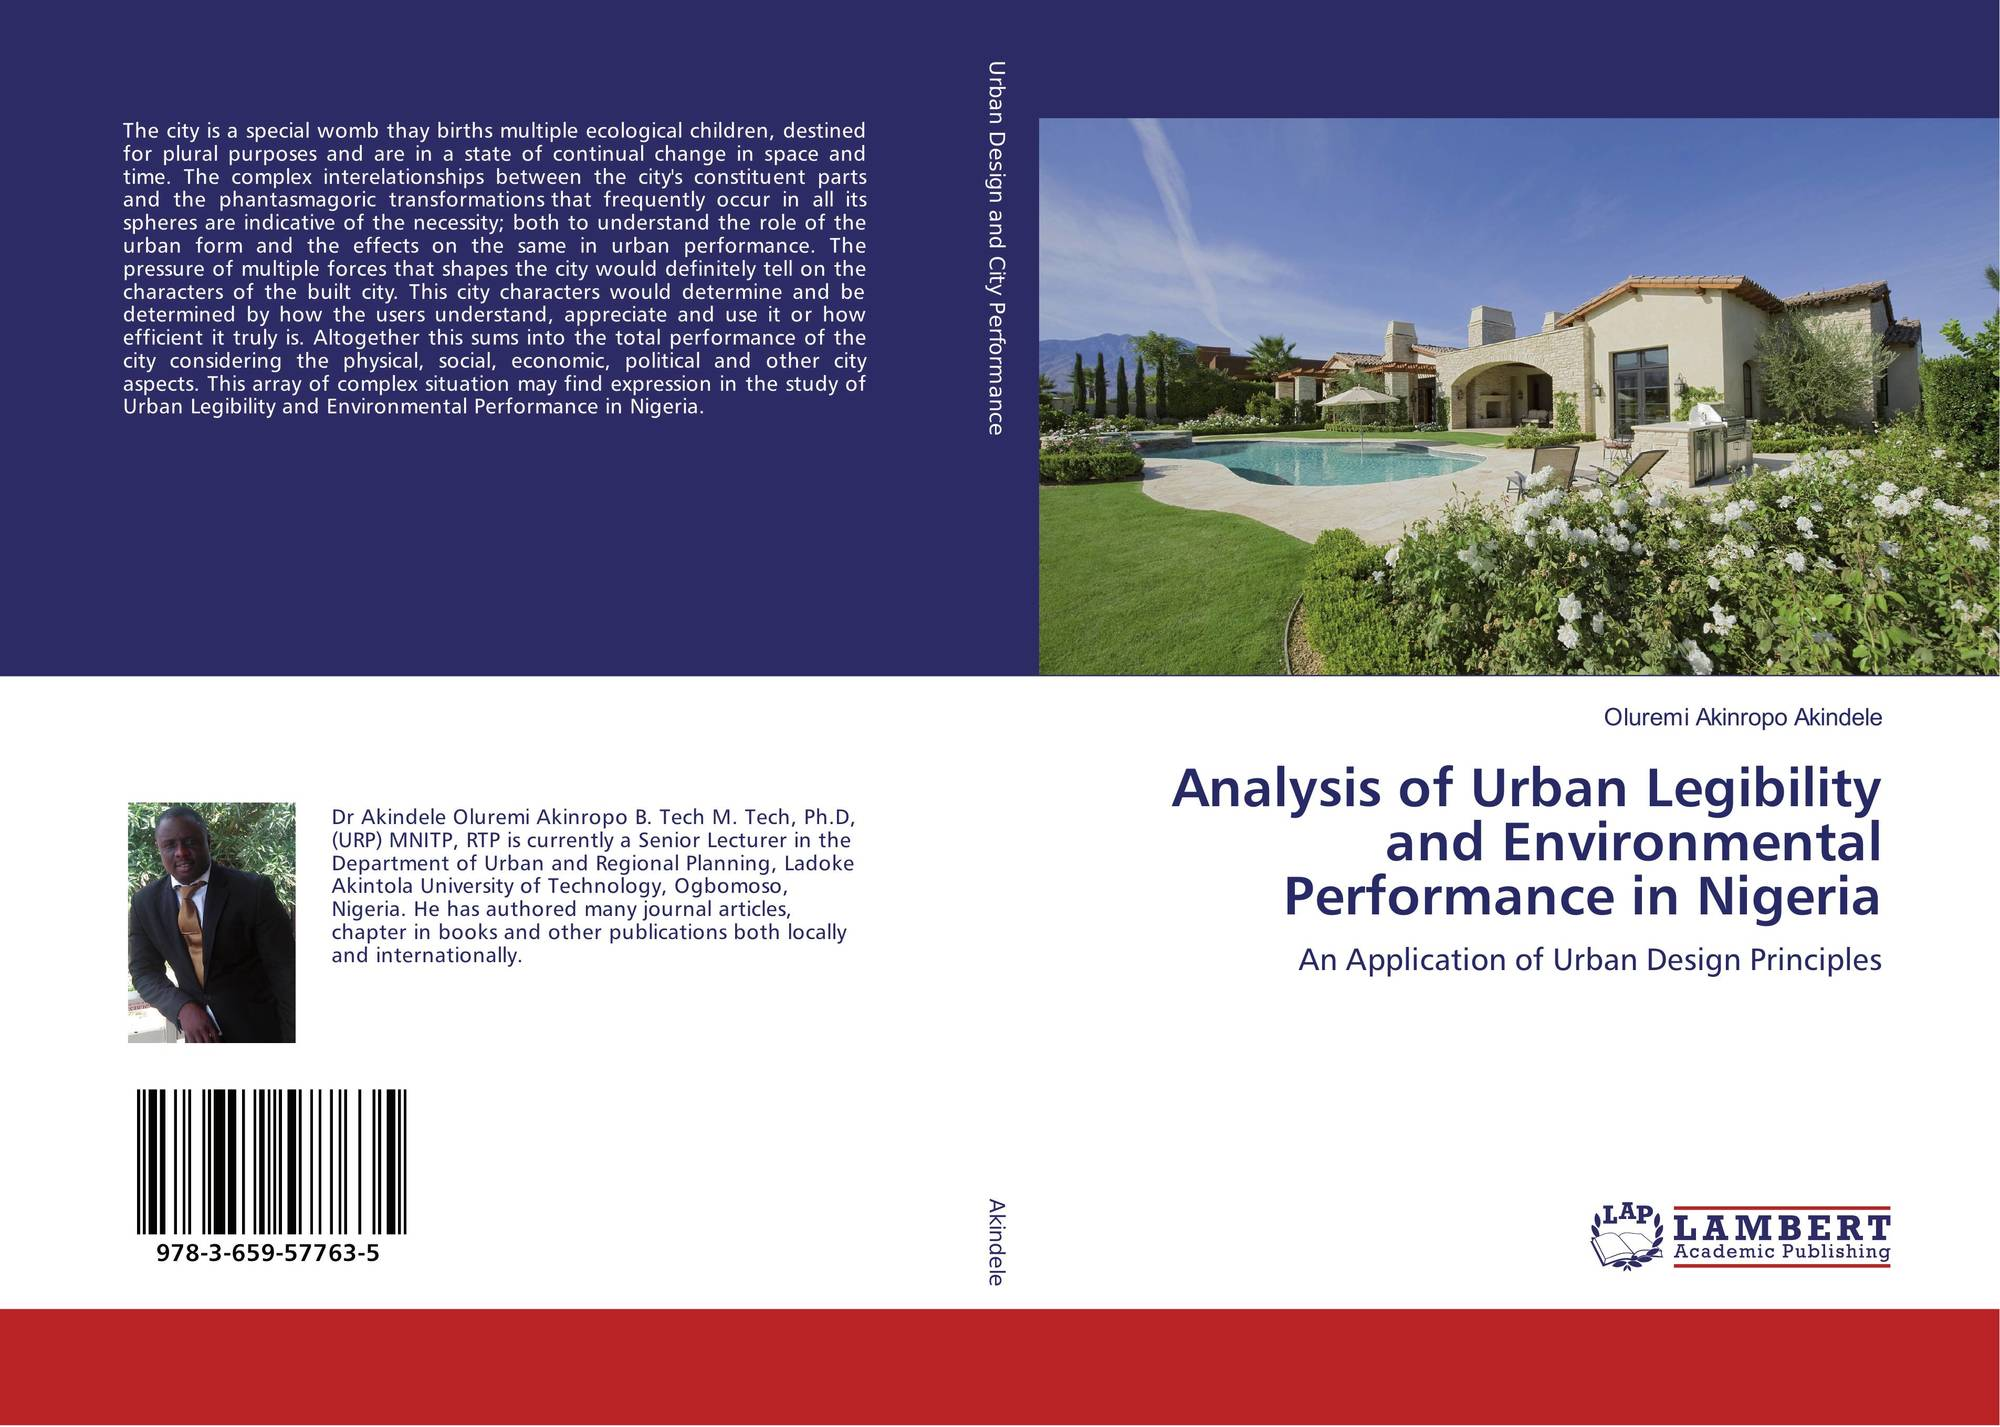 country affects planning and management in urban areas essay With reference to examples, assess the degree the economic development of a country affects planning and management in urban areas (40) the planning and management of urban areas covers several different issues present in all areas such as waste, sustainability and transport.